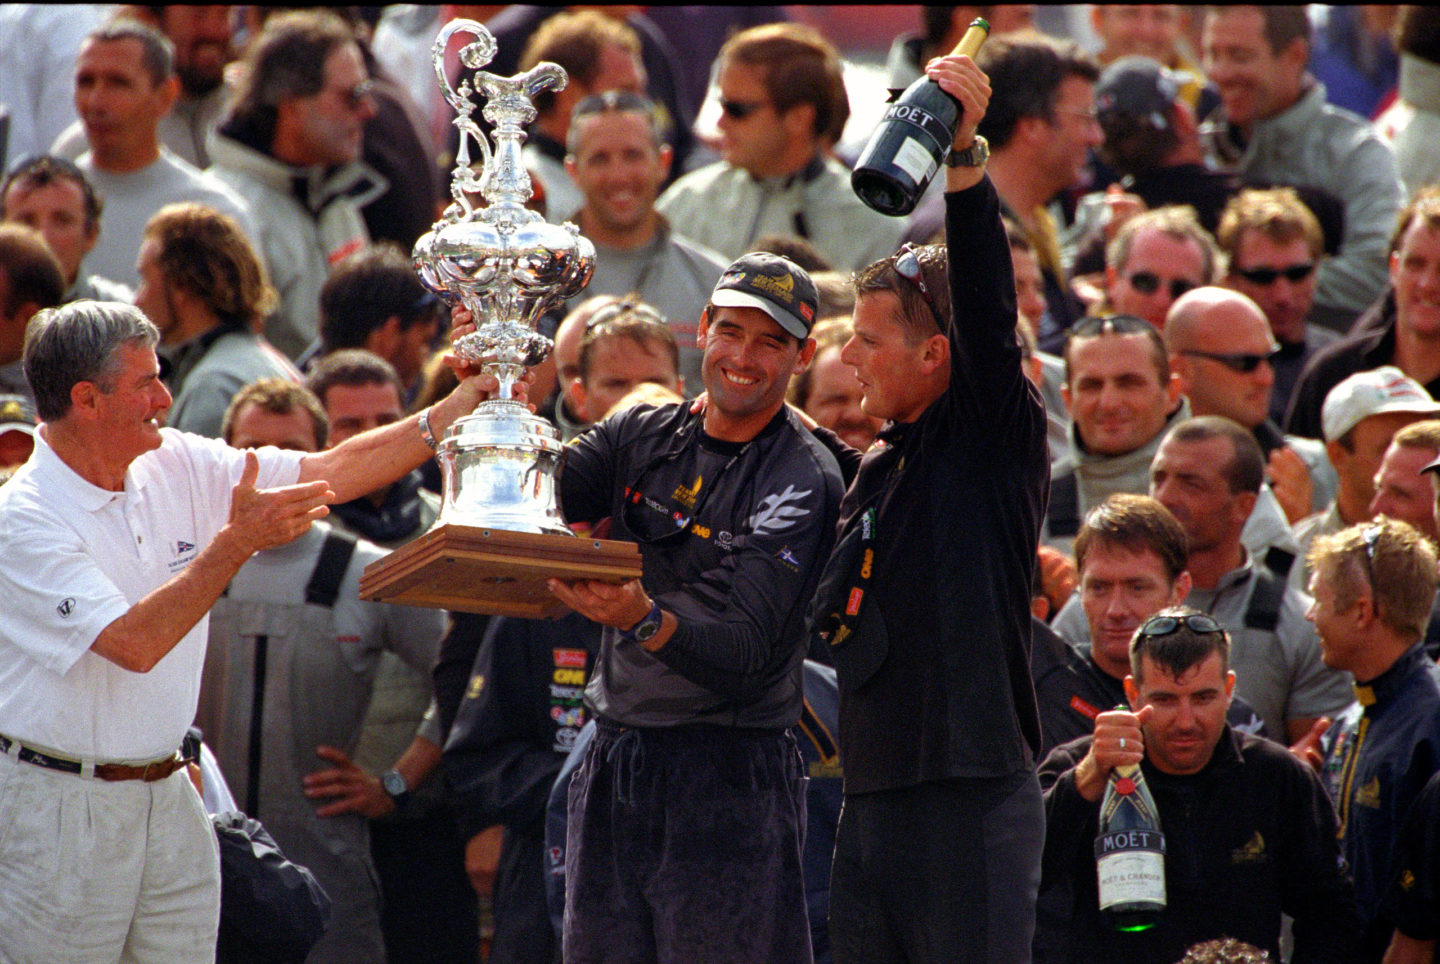 Russel Coutts and Dean Barker from Team New Zealand holding the America's cup in 2000 by Franck Socha